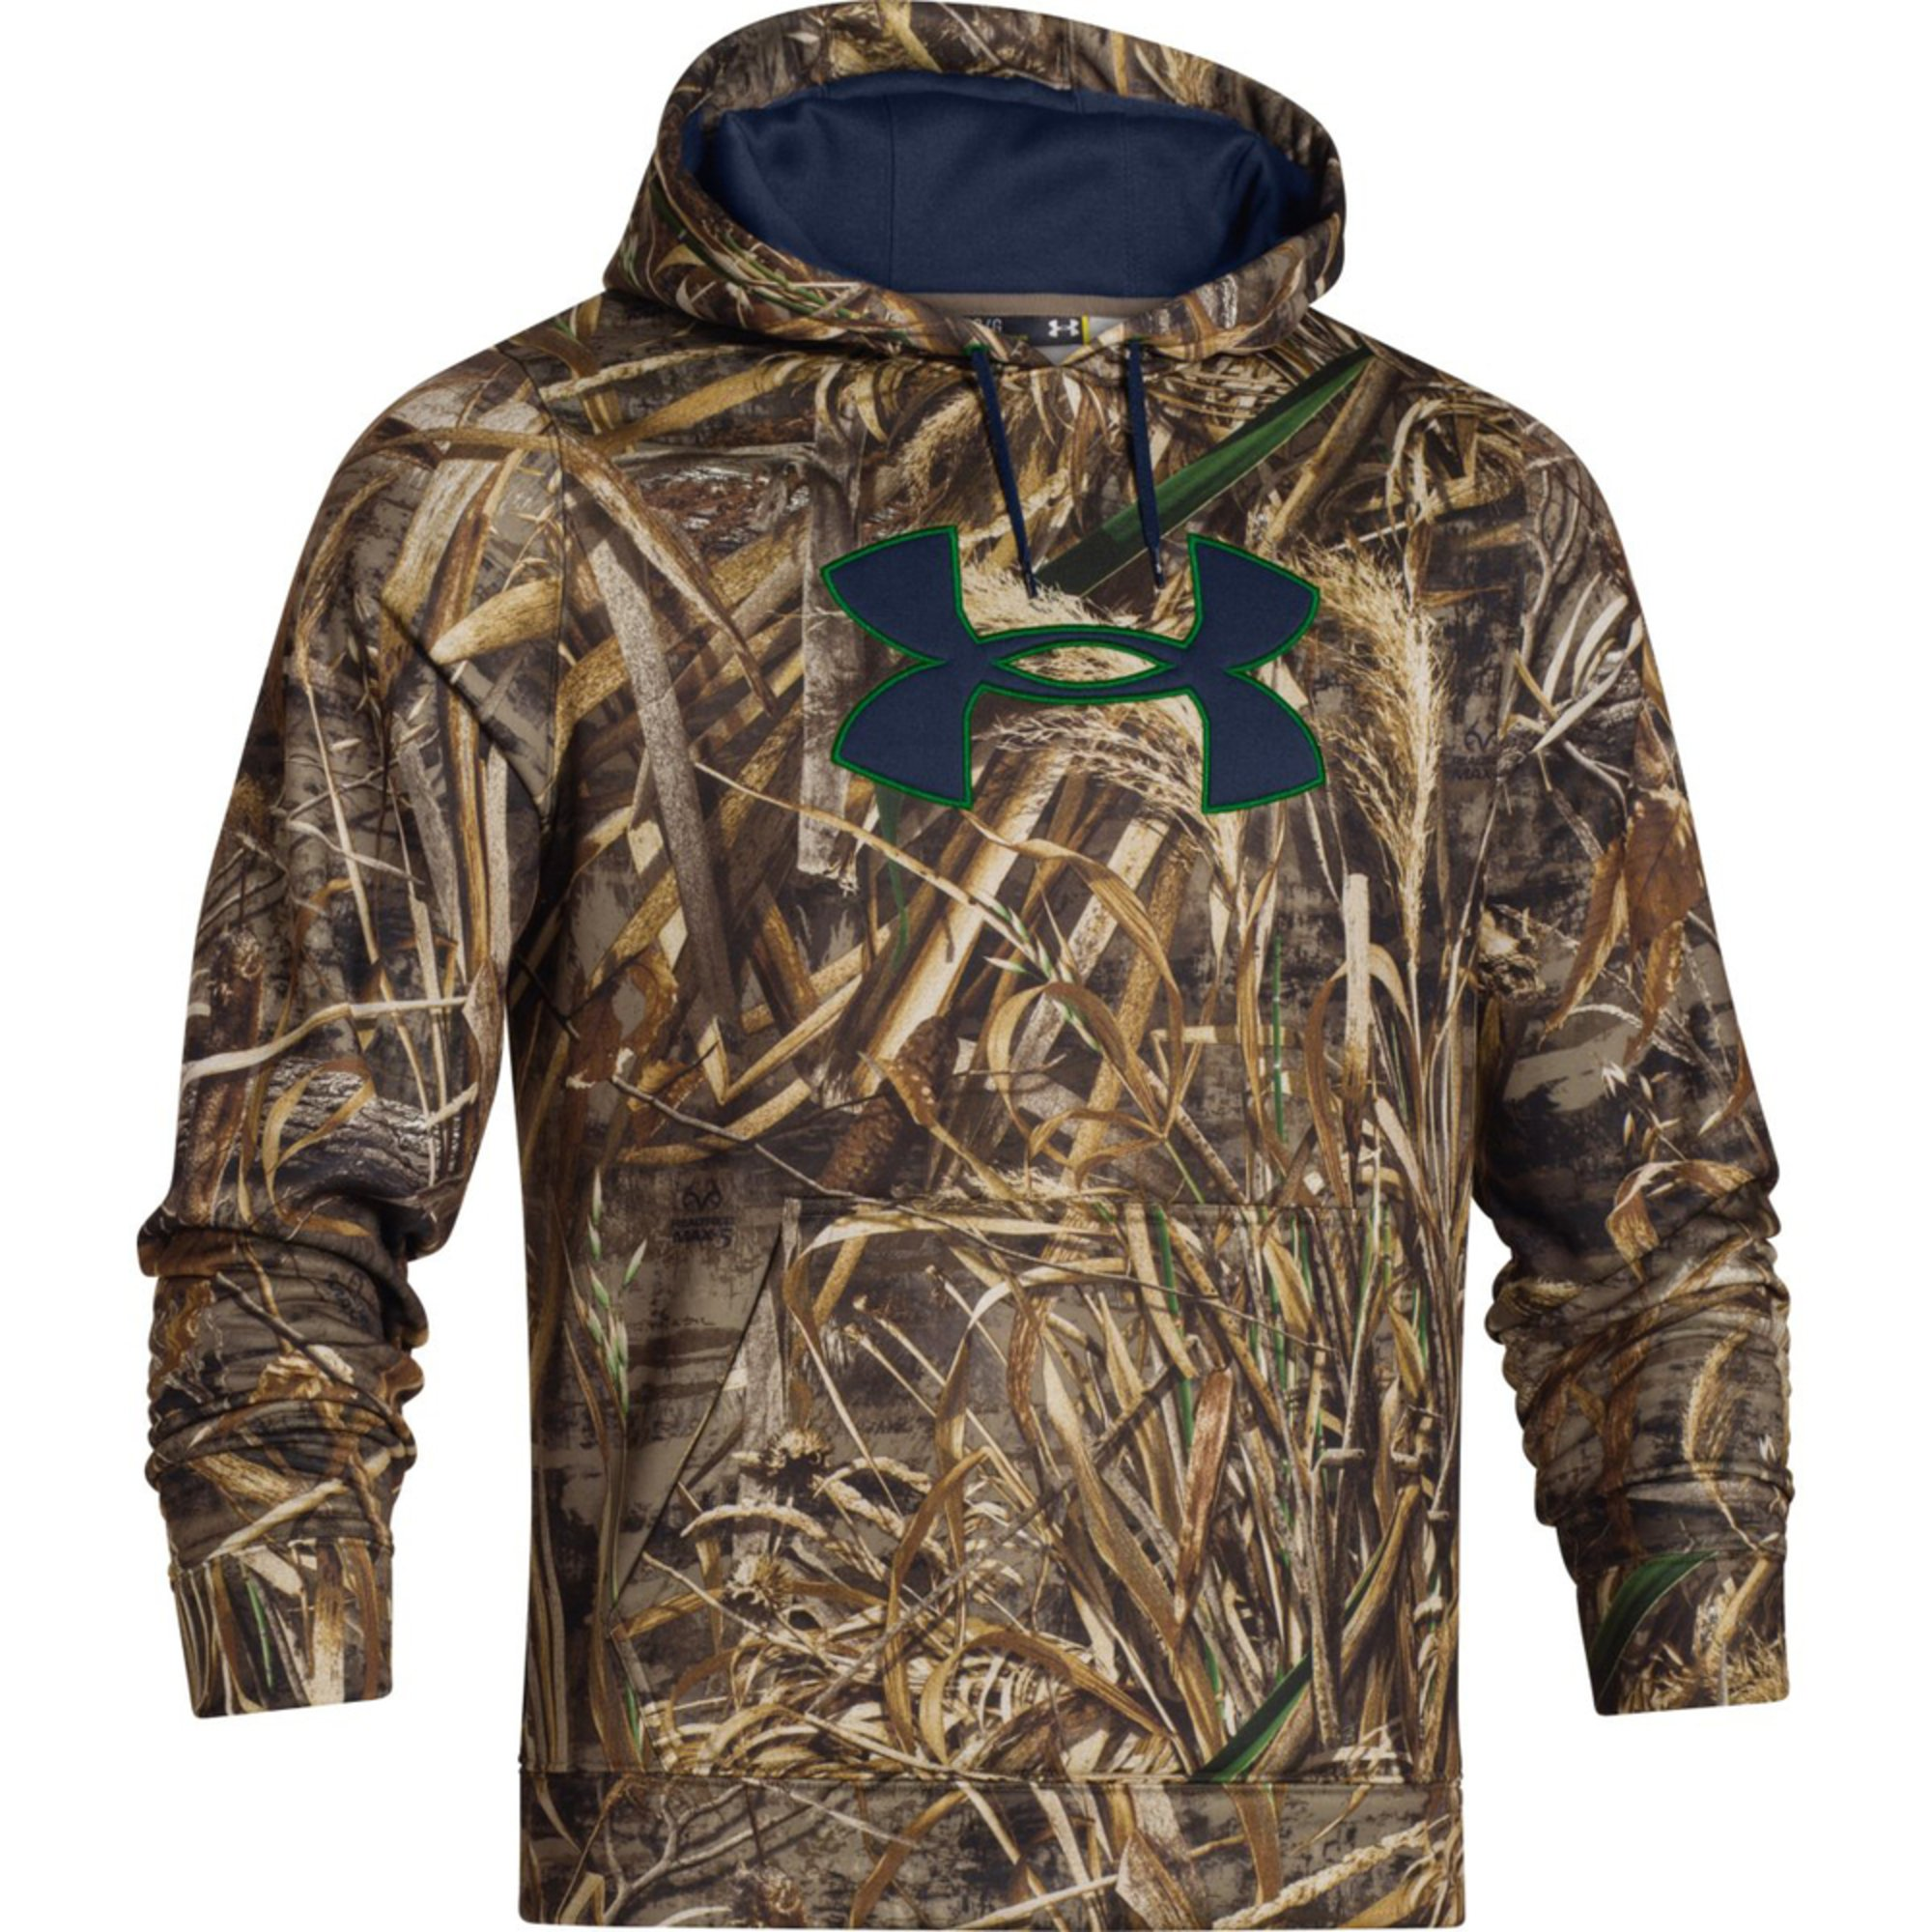 Under armour camo big logo hoody men 39 s clothing men for Under armour men s shirts clearance